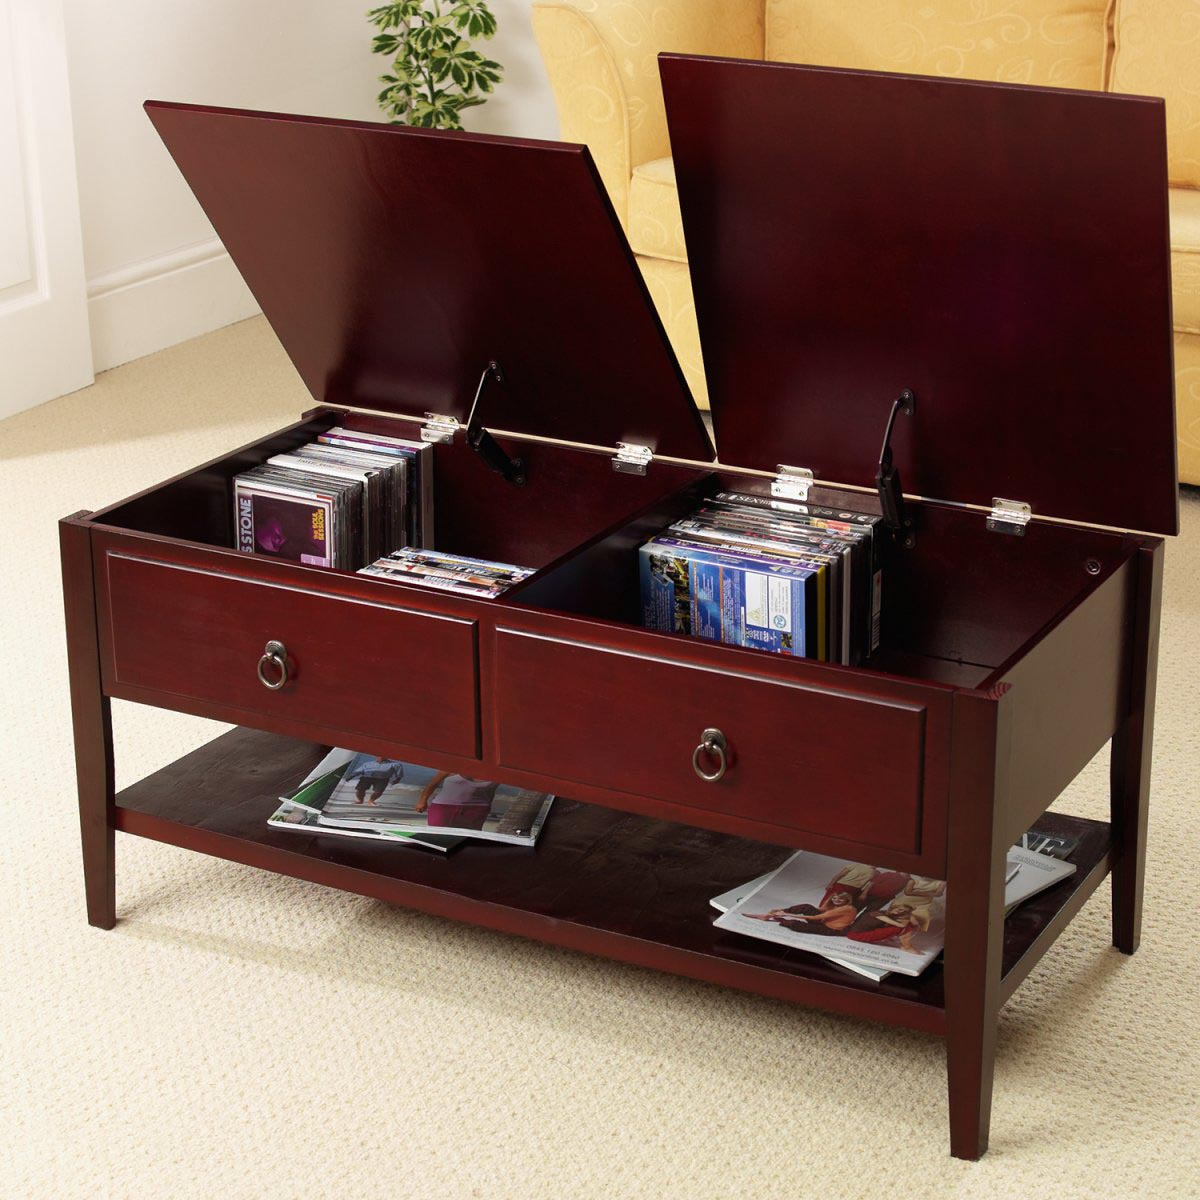 Mahogany Coffee Tables With Storage Coffee Table Design Ideas